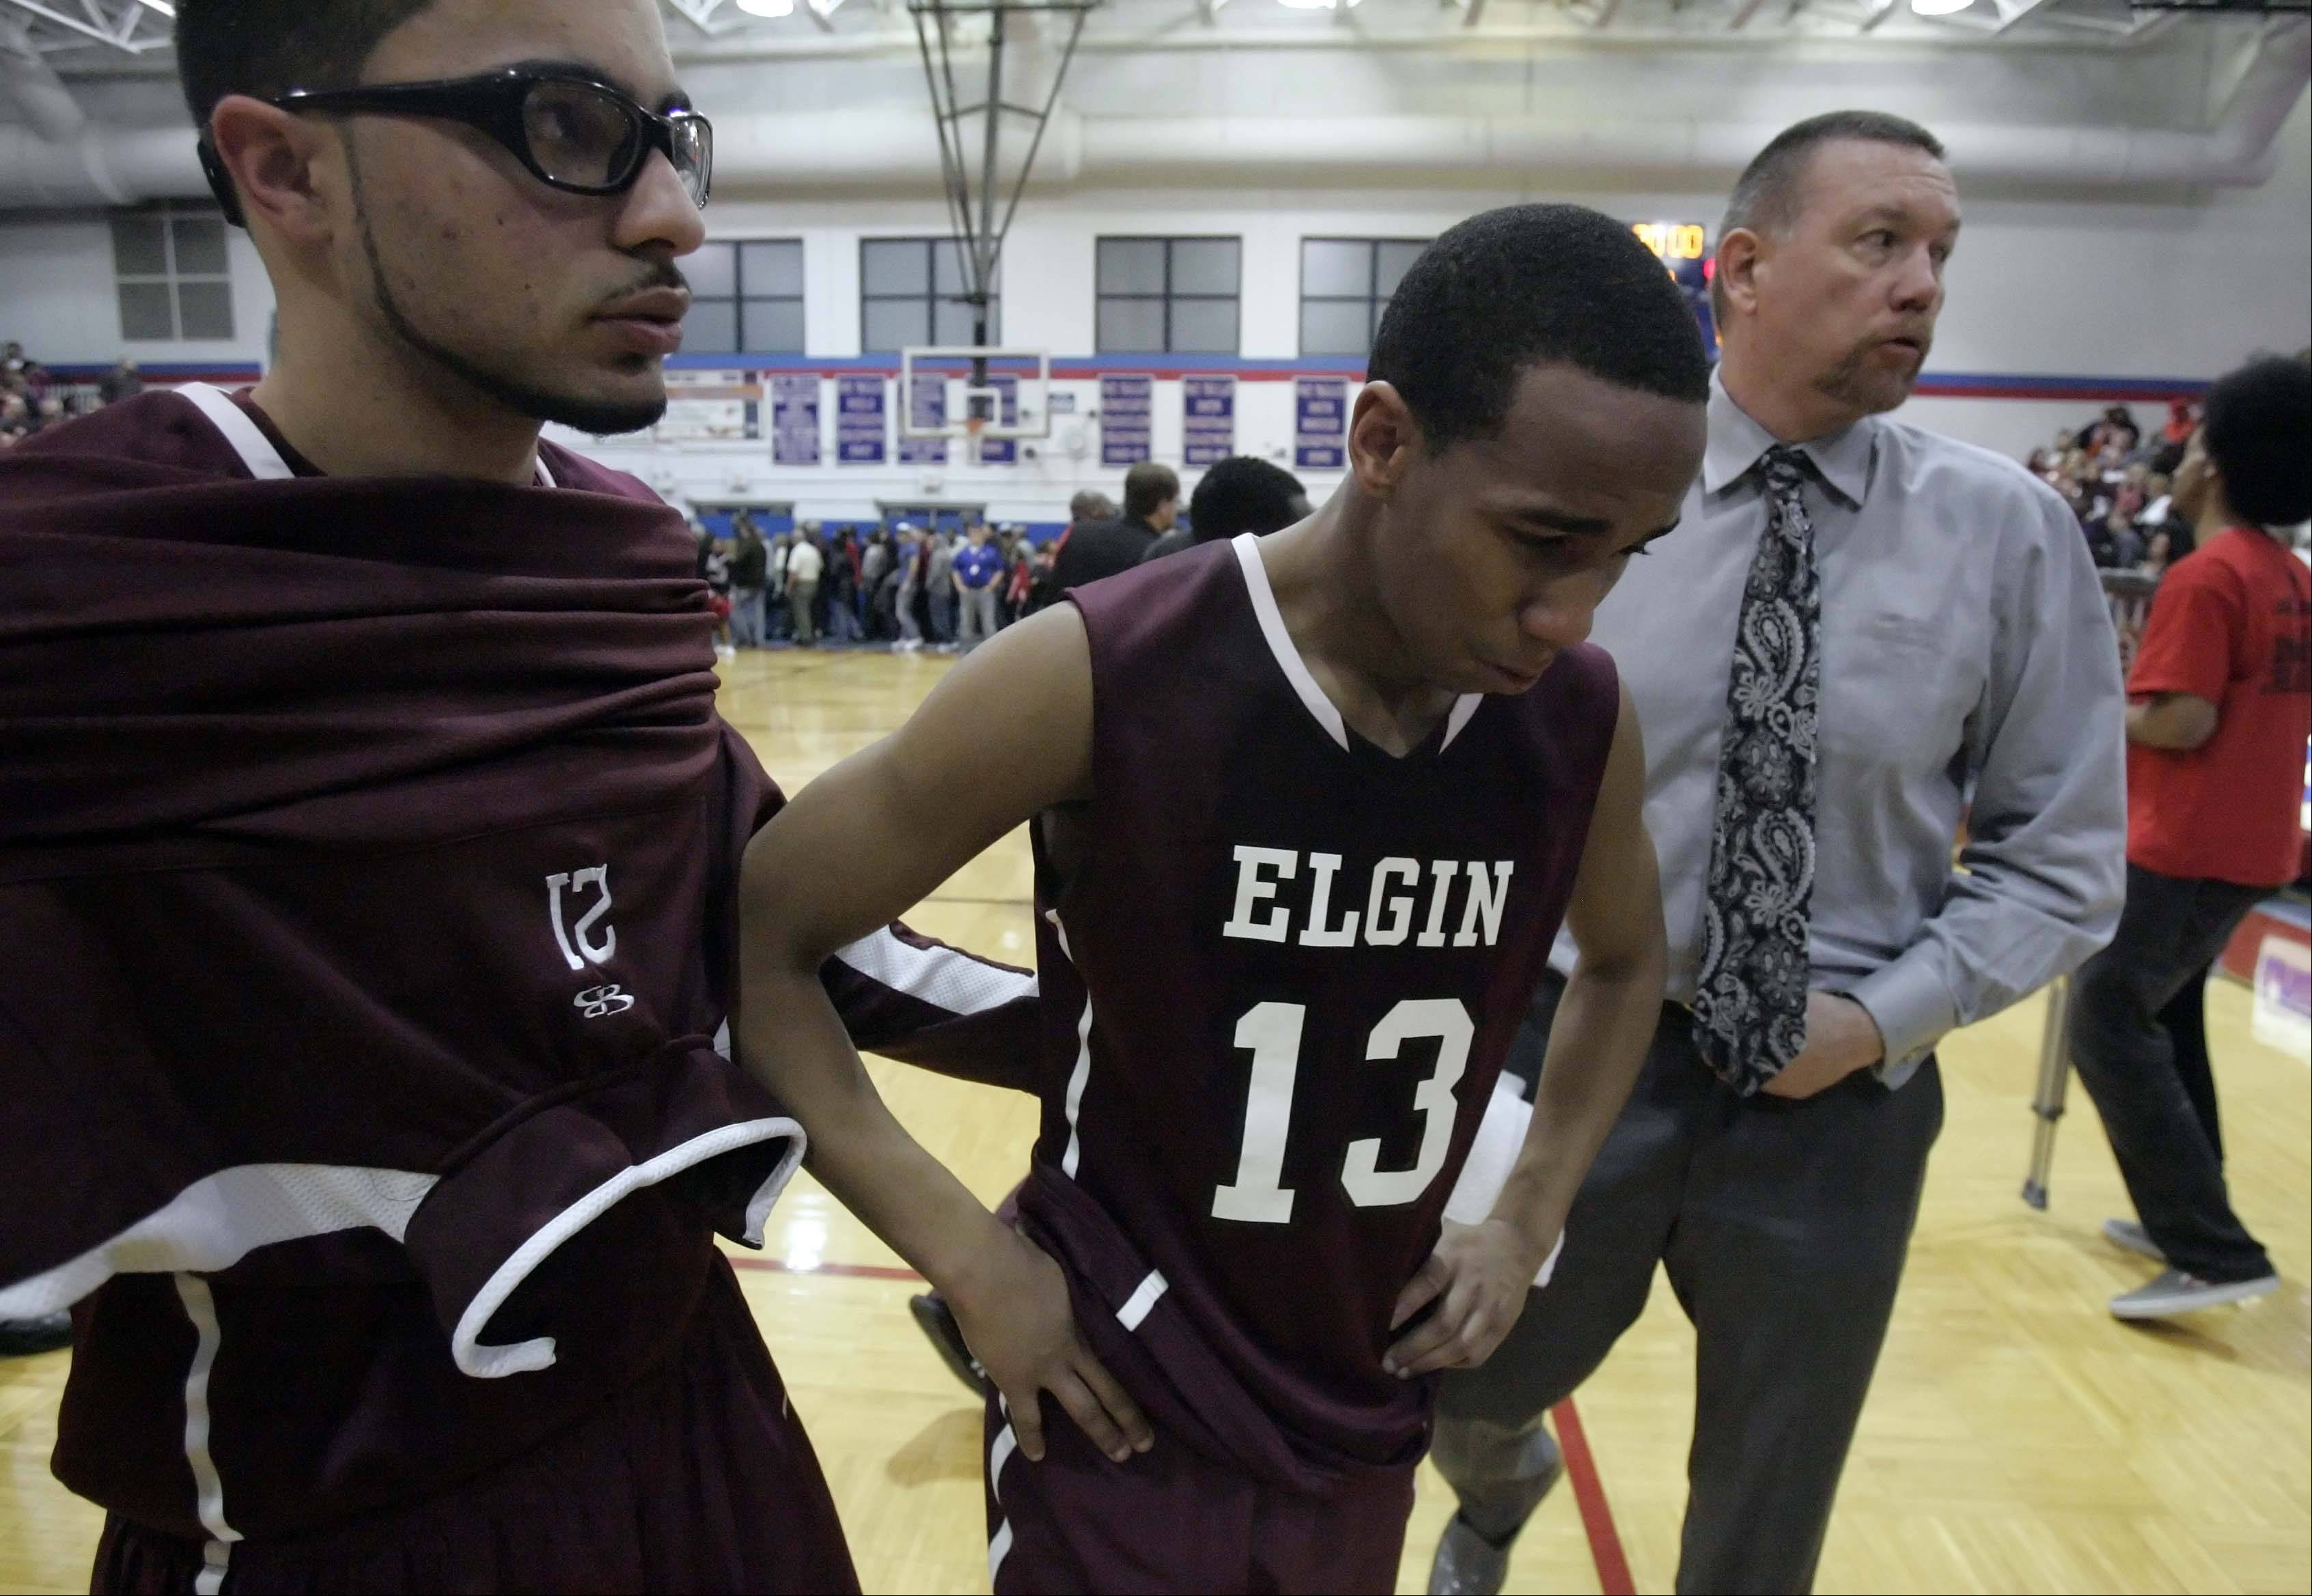 Elgin's Cortez Scott (13) reacts after their loss vs Rockford Auburn in the IHSA Class 4A sectional final at Dundee-Crown in Carpentersville March 9, 2012.